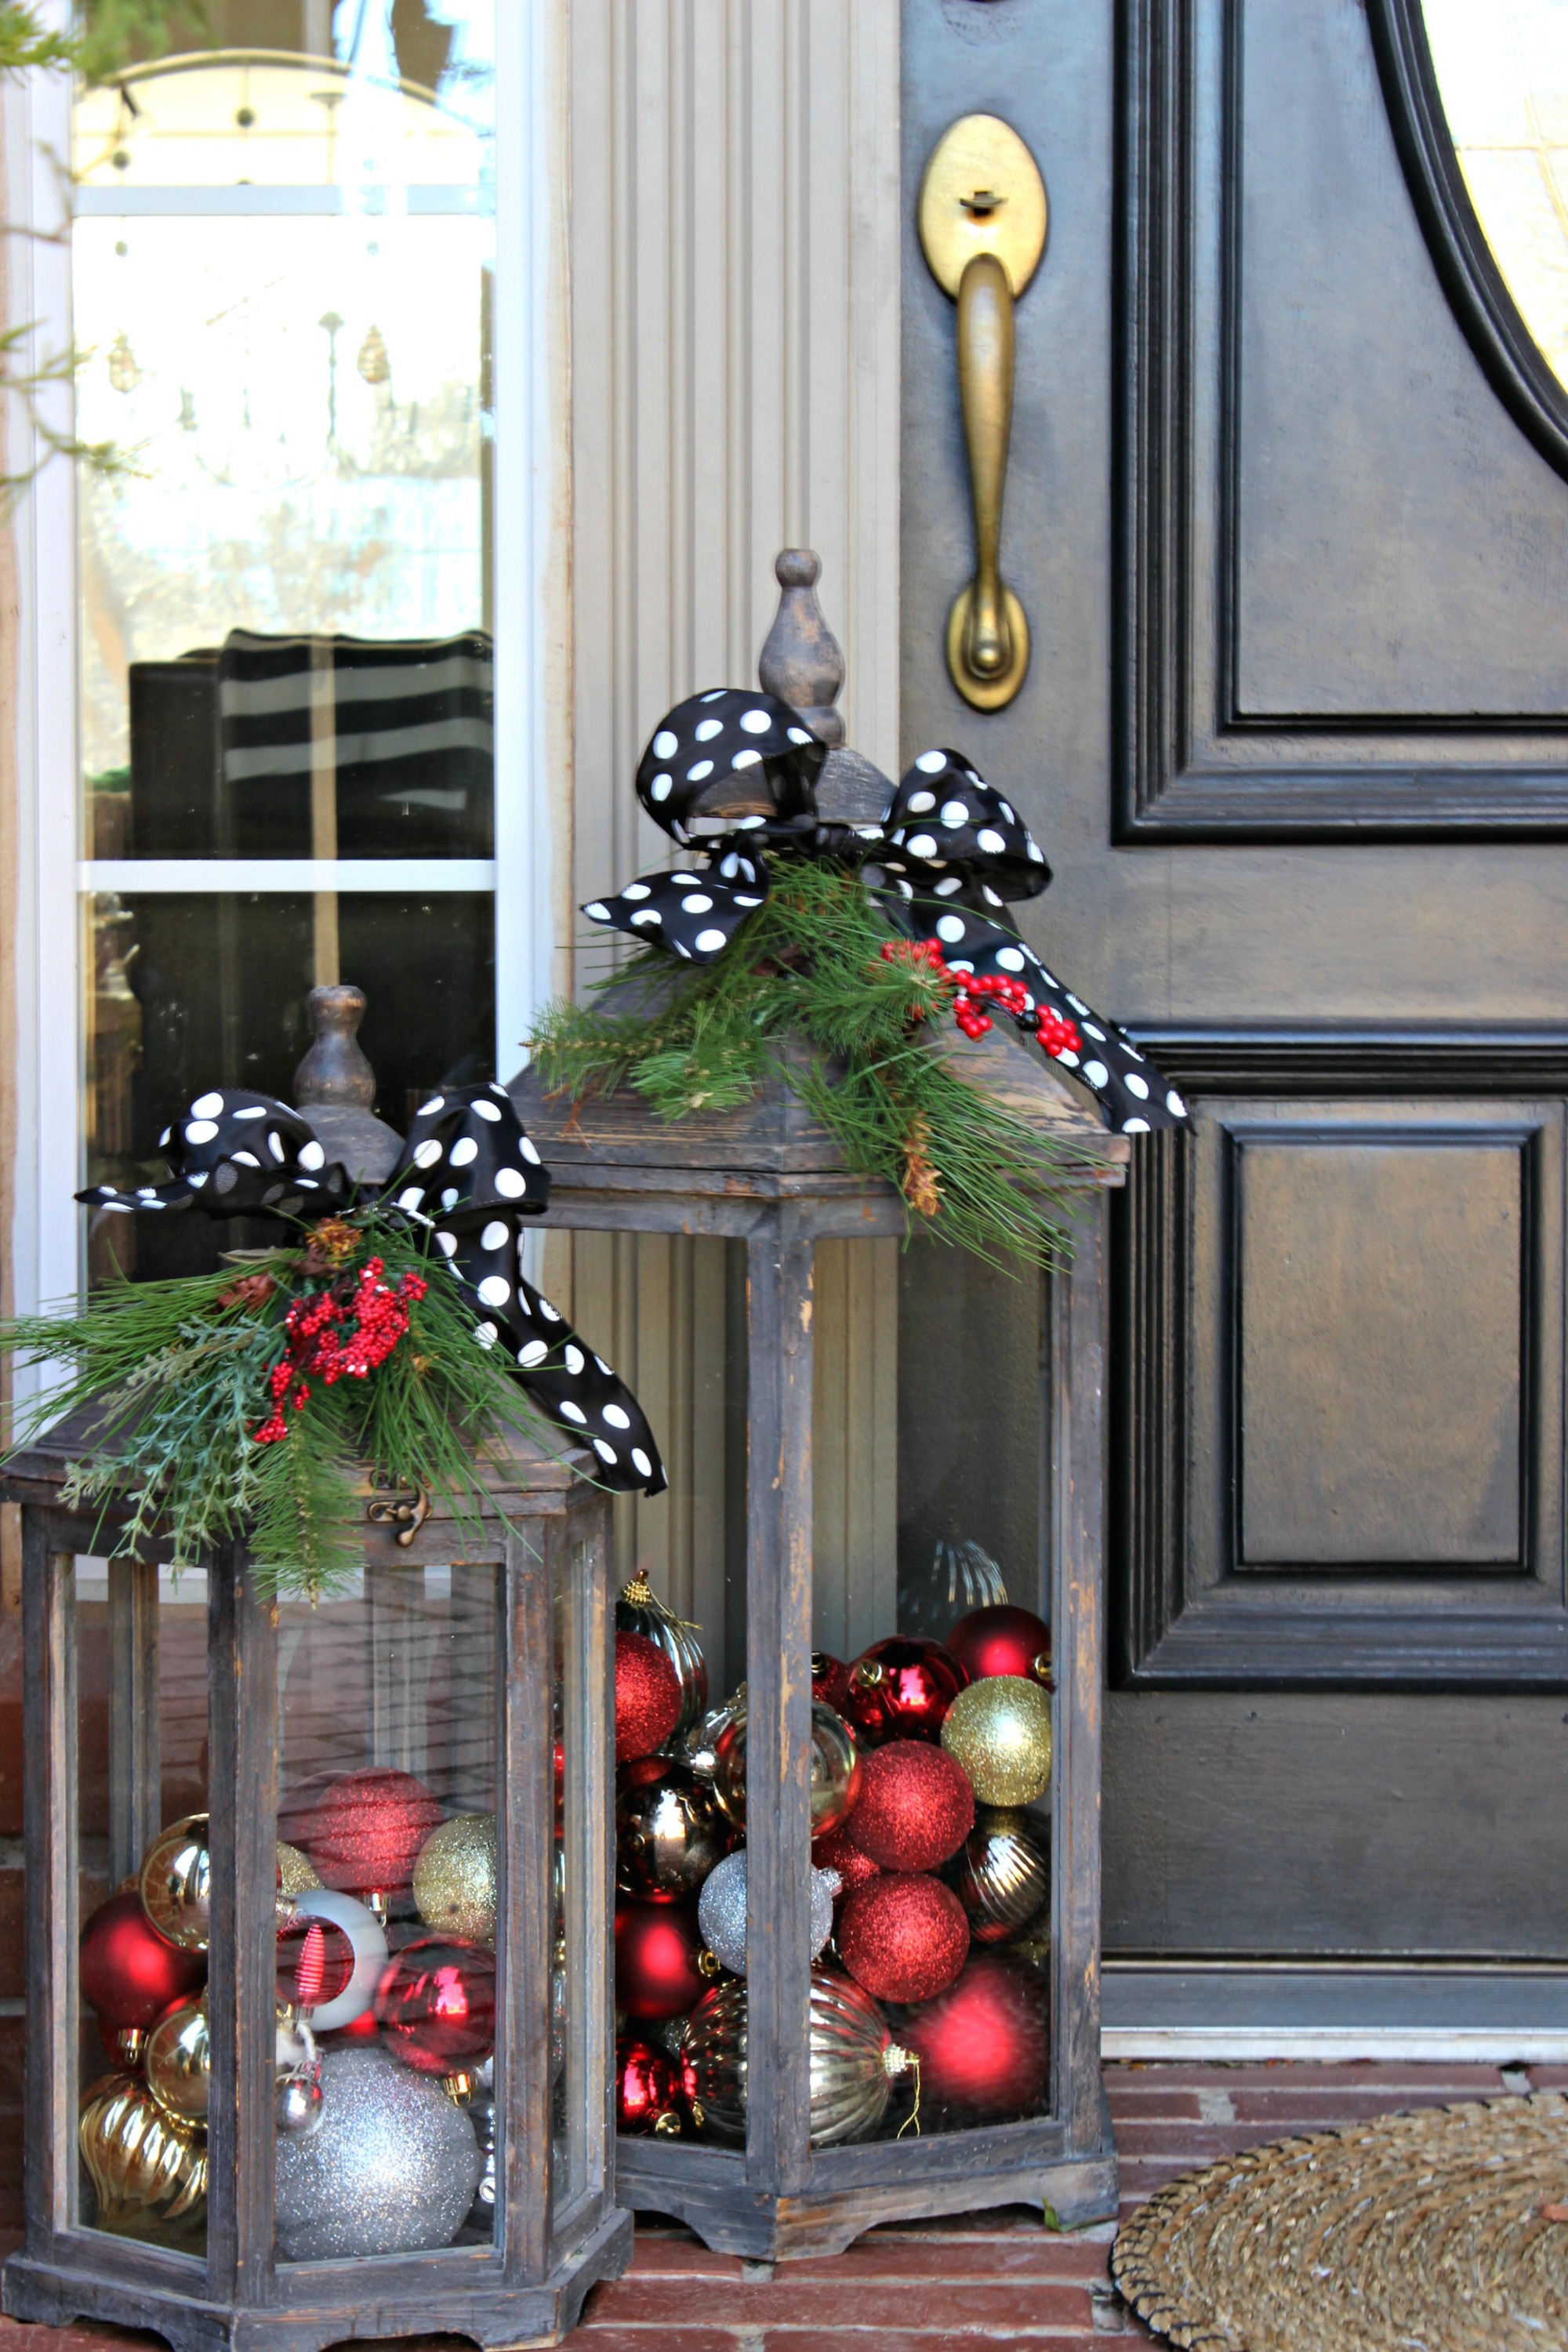 10 Outdoor Christmas Decoration Ideas - Stylish Outside ... on Lawn Decorating Ideas id=53975